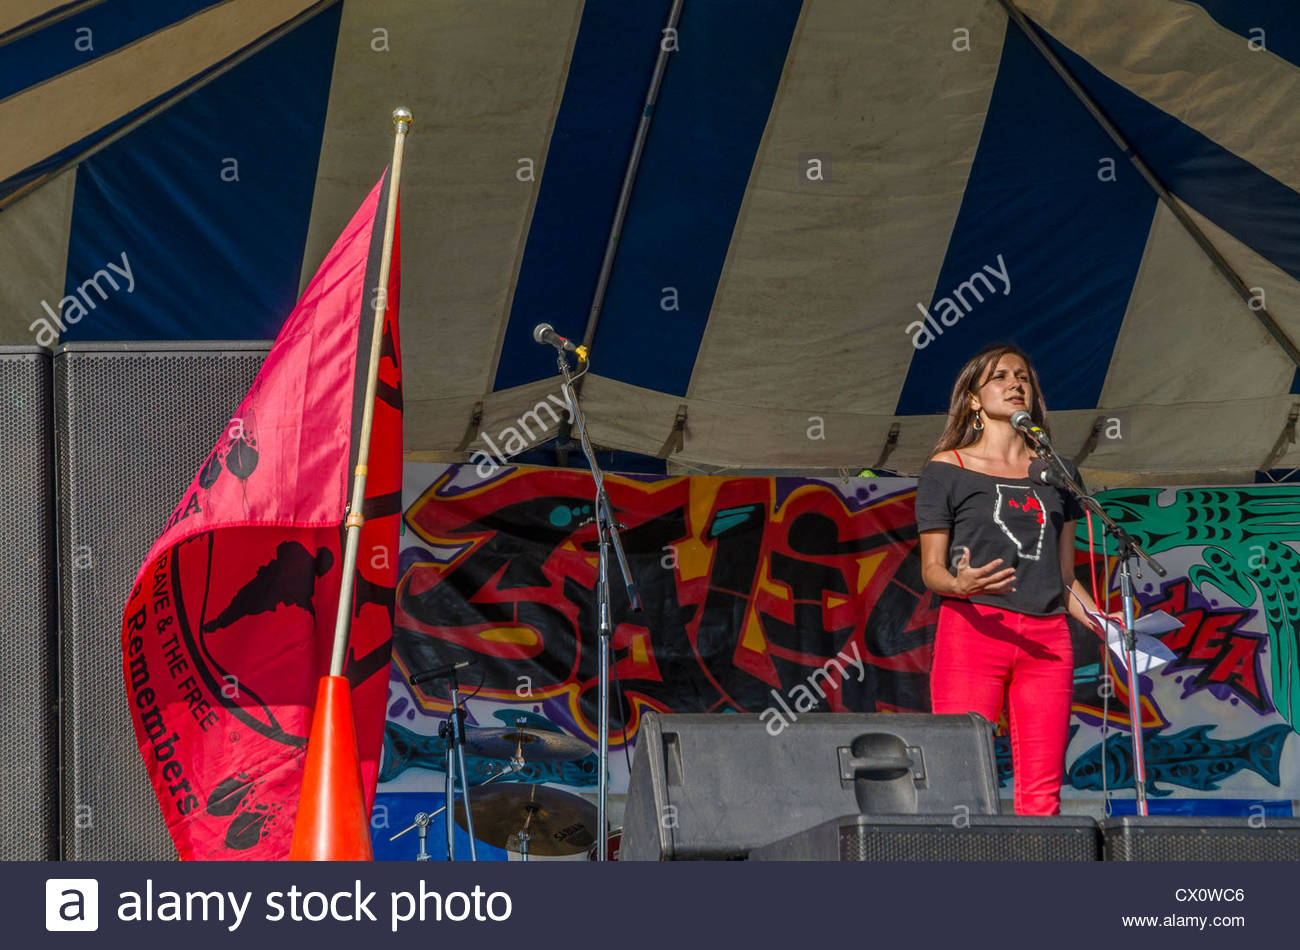 Melina Laboucan-Massimo, a member of the Lubicon Cree First Nation, speaks at Salish Sea Festival. - Stock Image